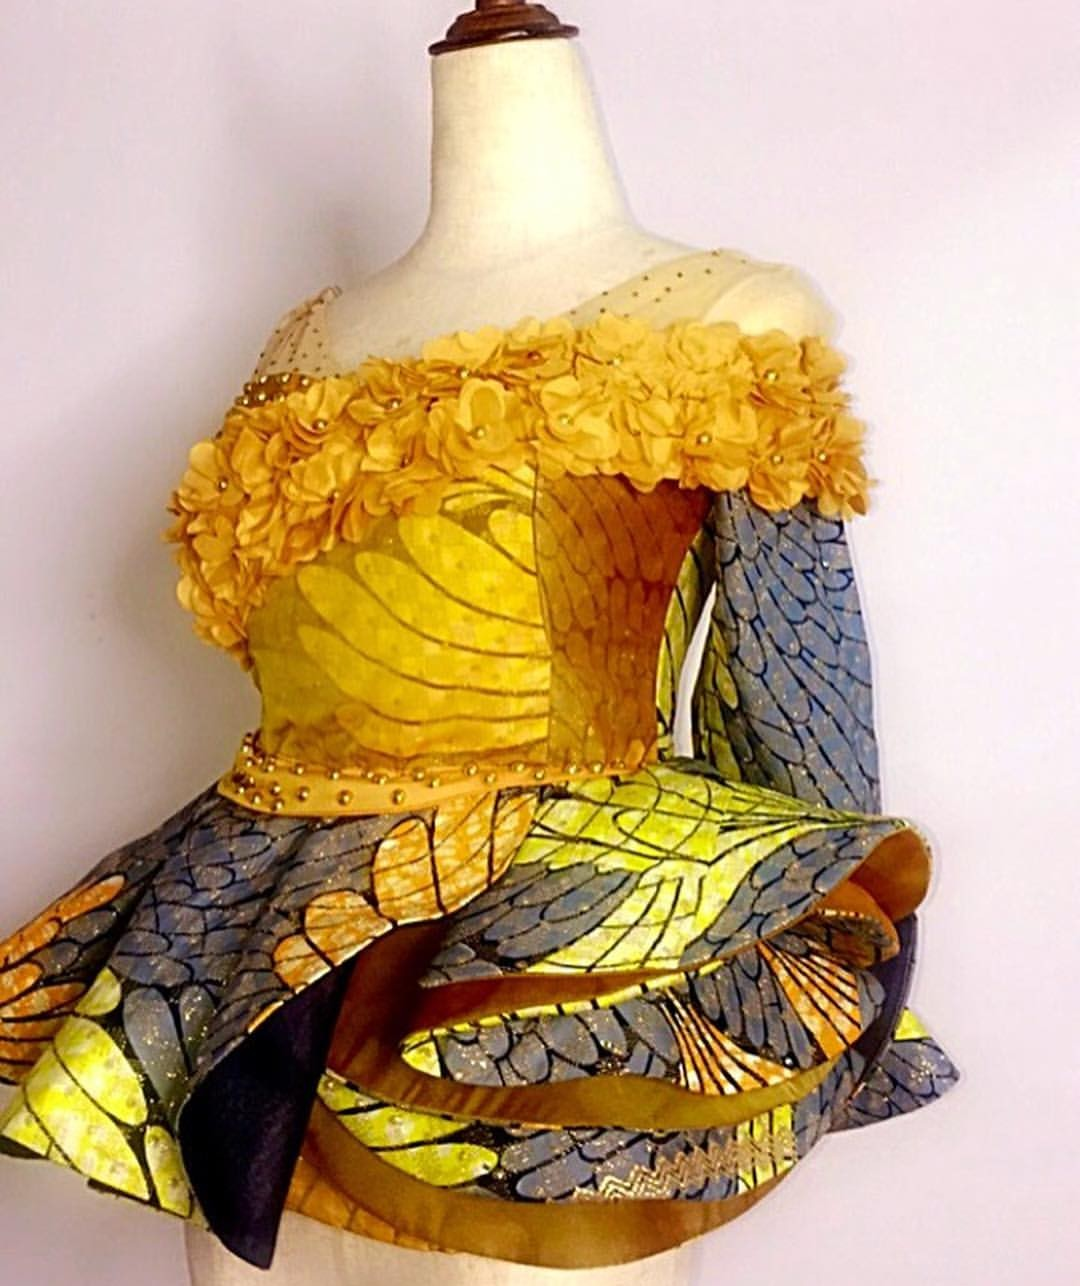 NEW 2020 PEPLUM ANKARA DESIGNS, WE ALL LOVE TO WEAR EVERY DAY! 3